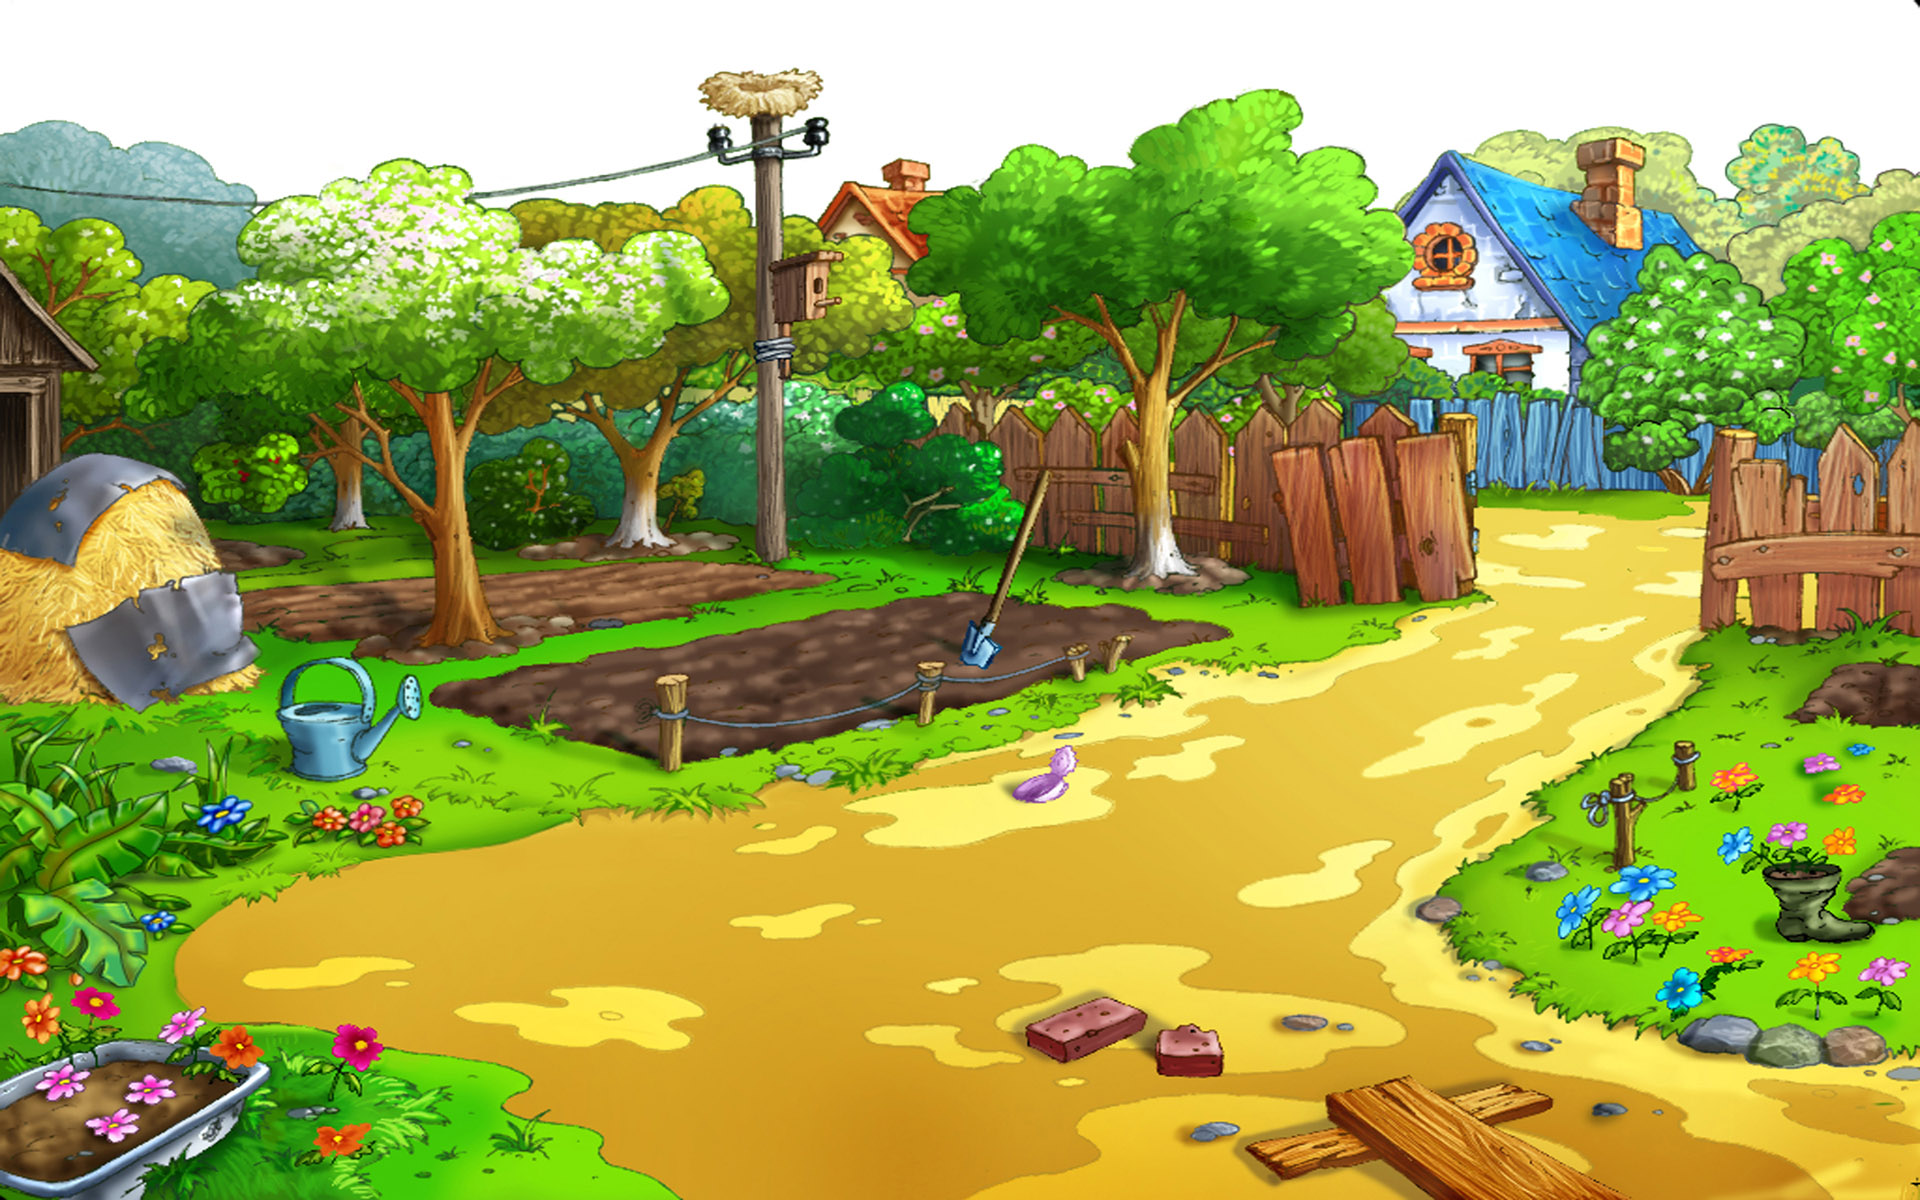 Cartoon garden HD wallpaper | HD Latest Wallpapers